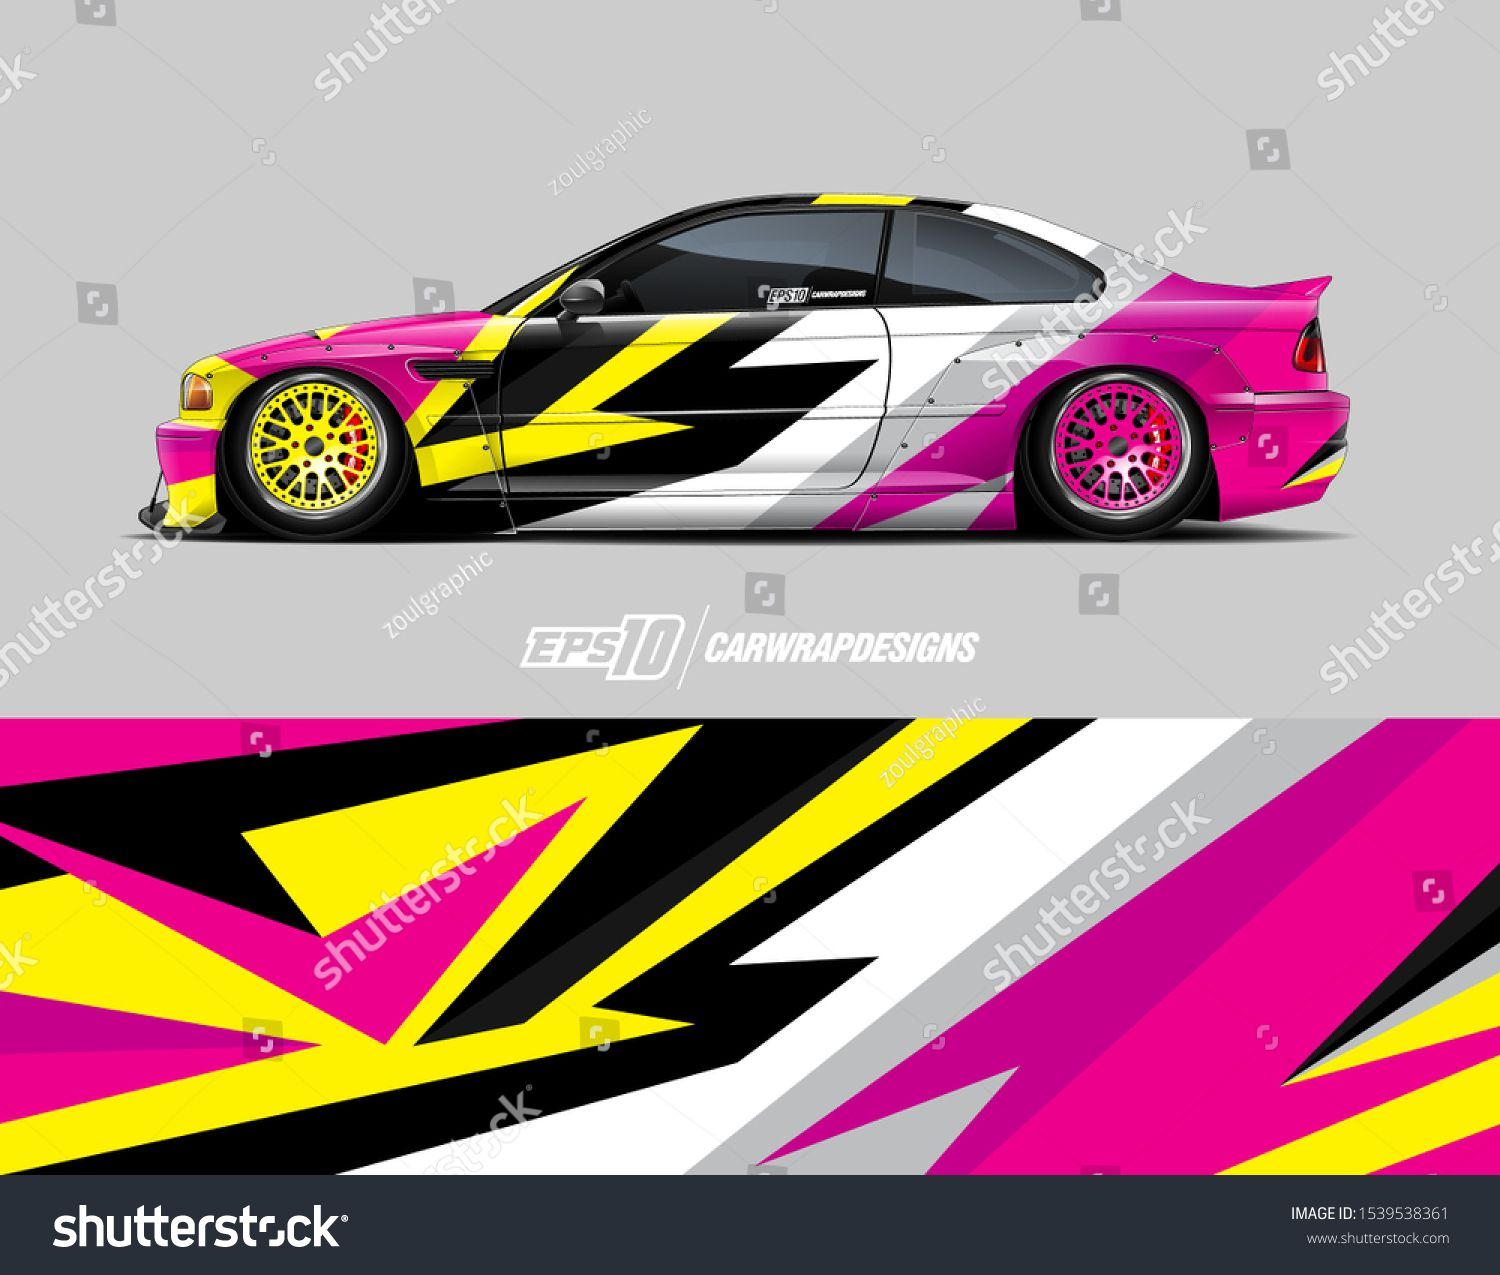 Race Car Wrap Decal Designs Abstract Background For Racing Livery Or Daily Use Car Vinyl Sticker Full Vector Car Wrap Car Custom Cars [ 1275 x 1500 Pixel ]